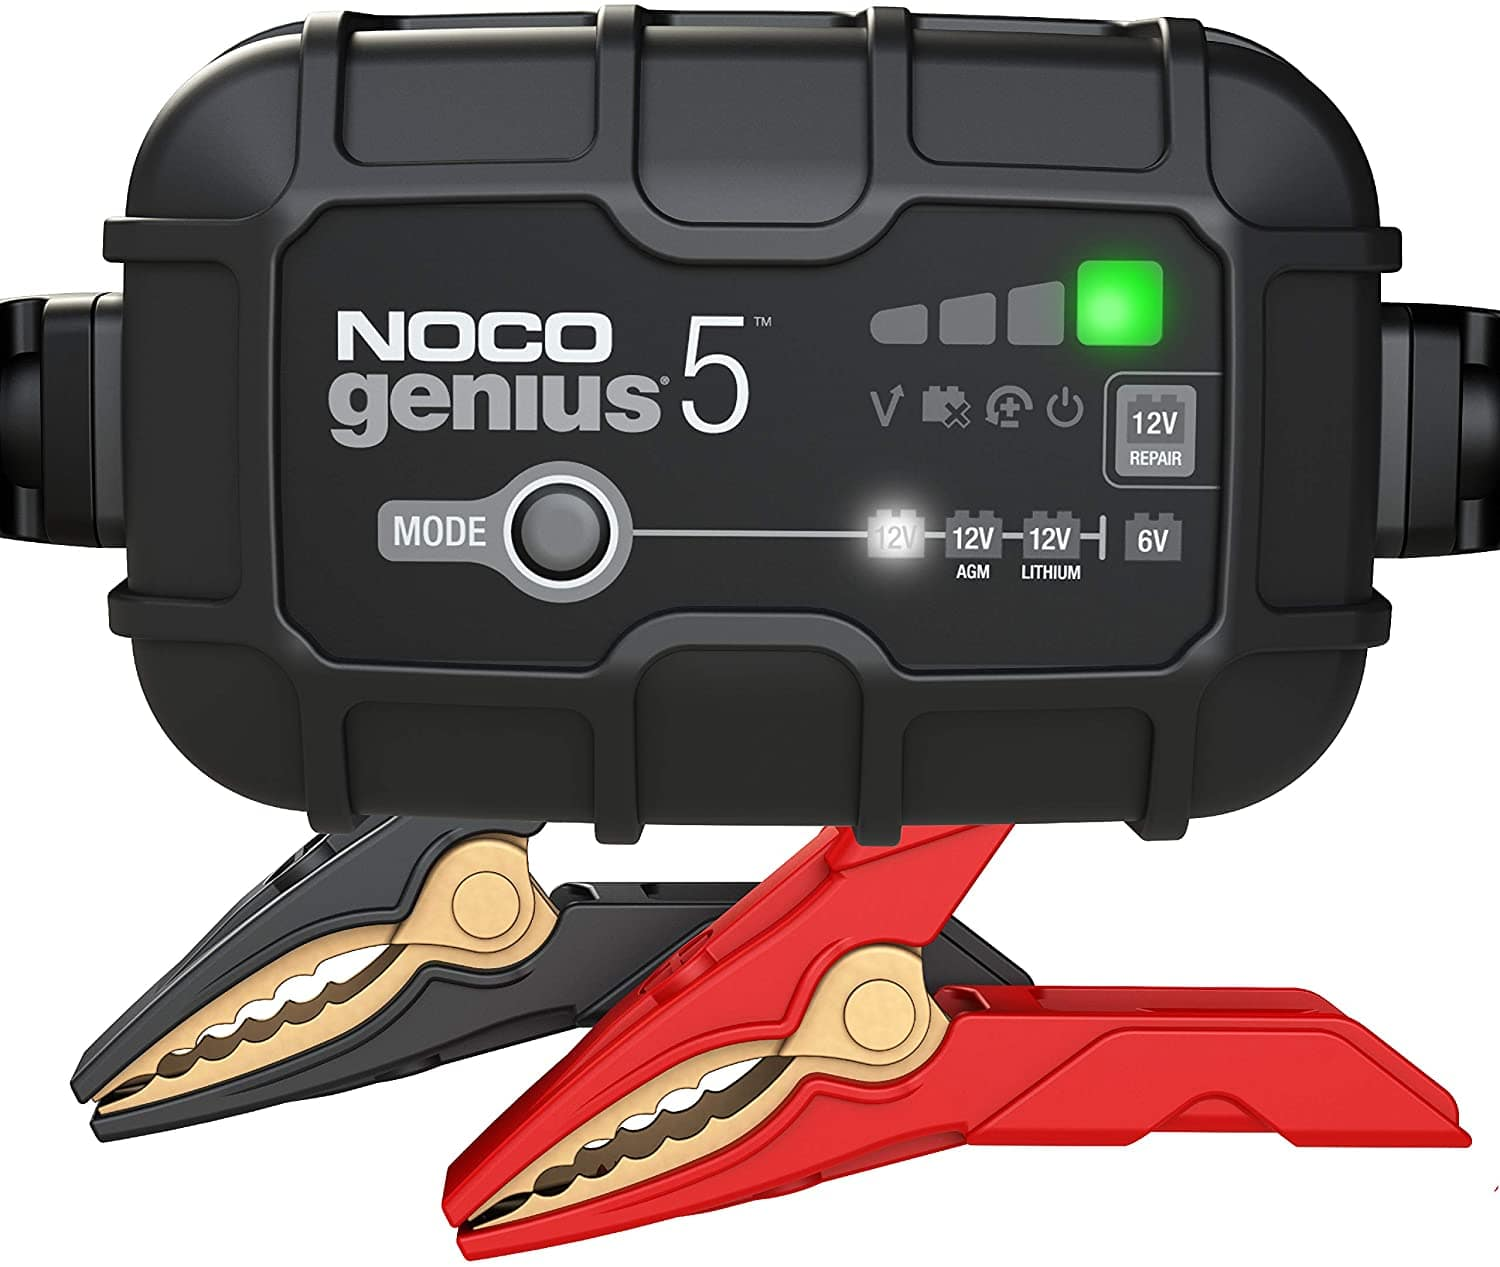 NOCO GENIUS5, 5-Amp Fully-Automatic Smart Charger, 6V And 12V Battery Charger, Battery Maintainer, And Battery Desulfator With Temperature Compensation $60.61